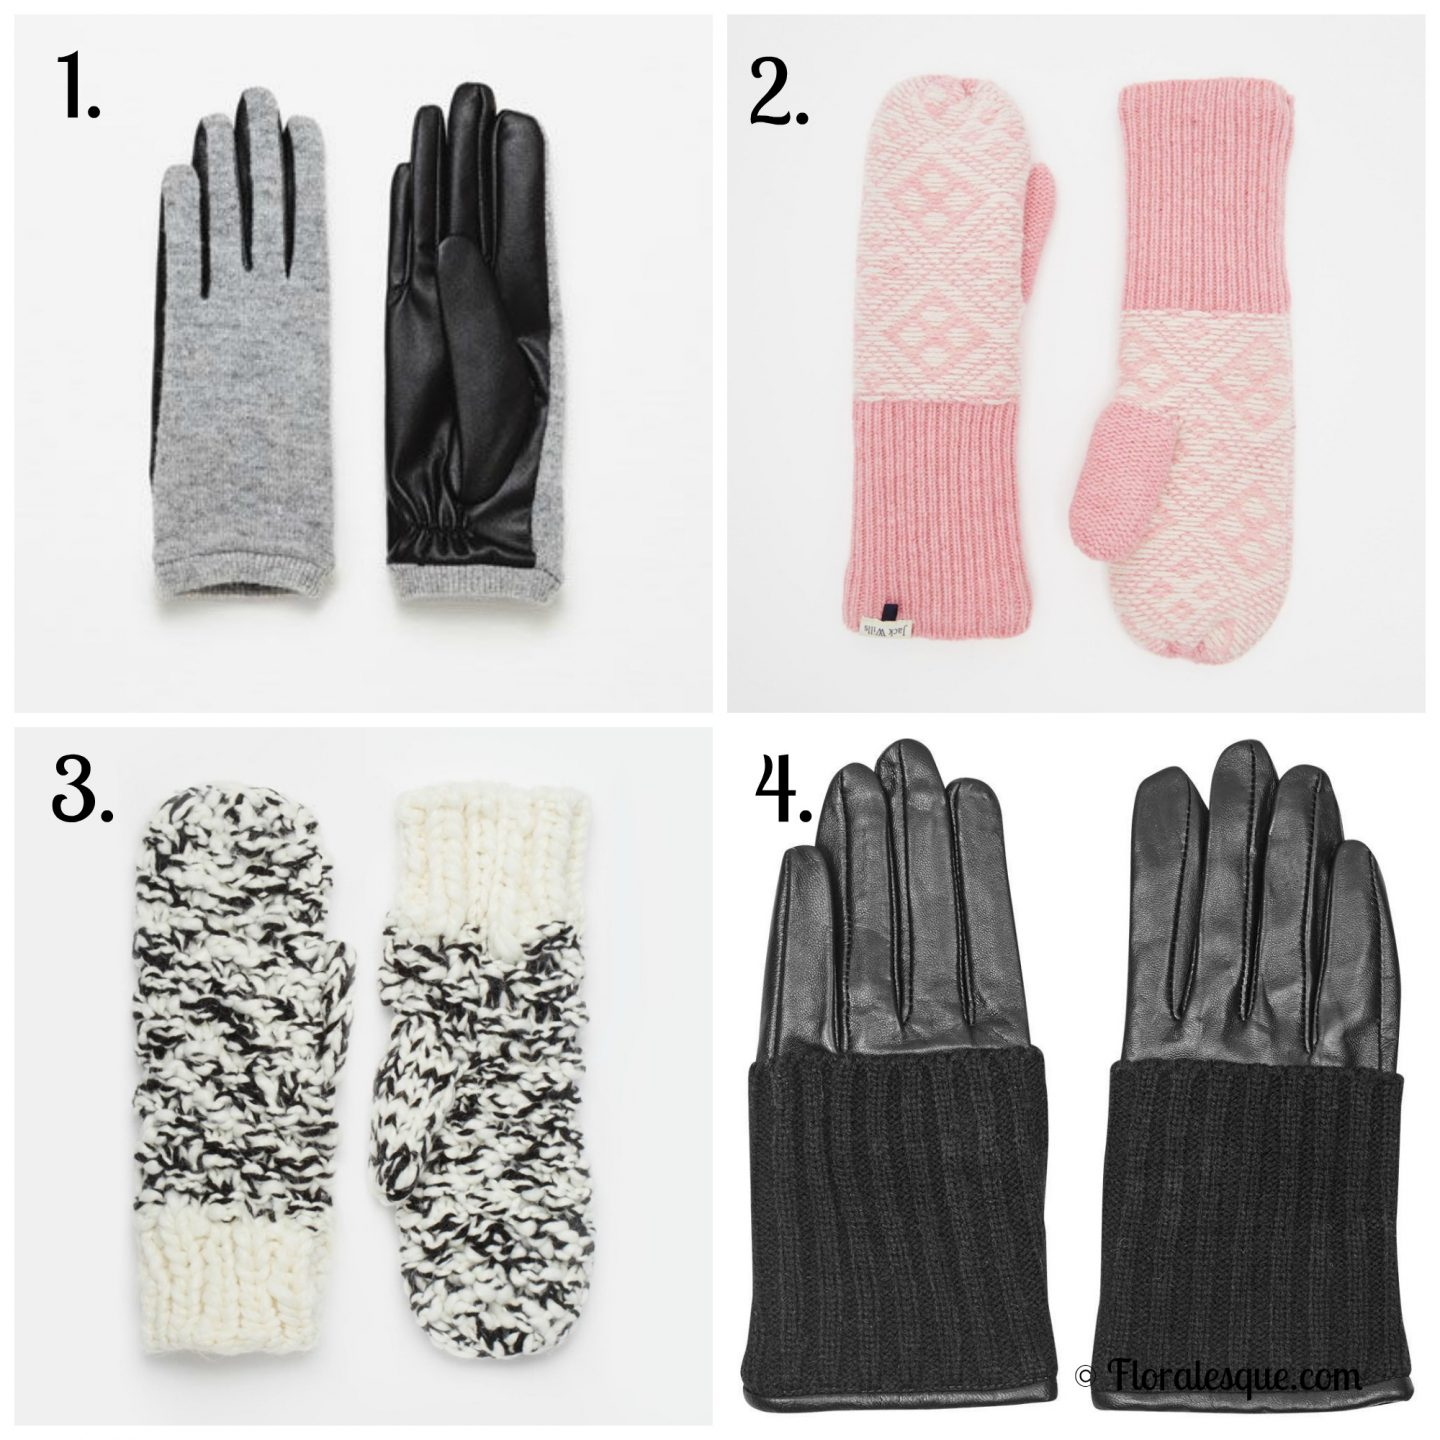 Floralesque Top Hand Care Tips for Winter